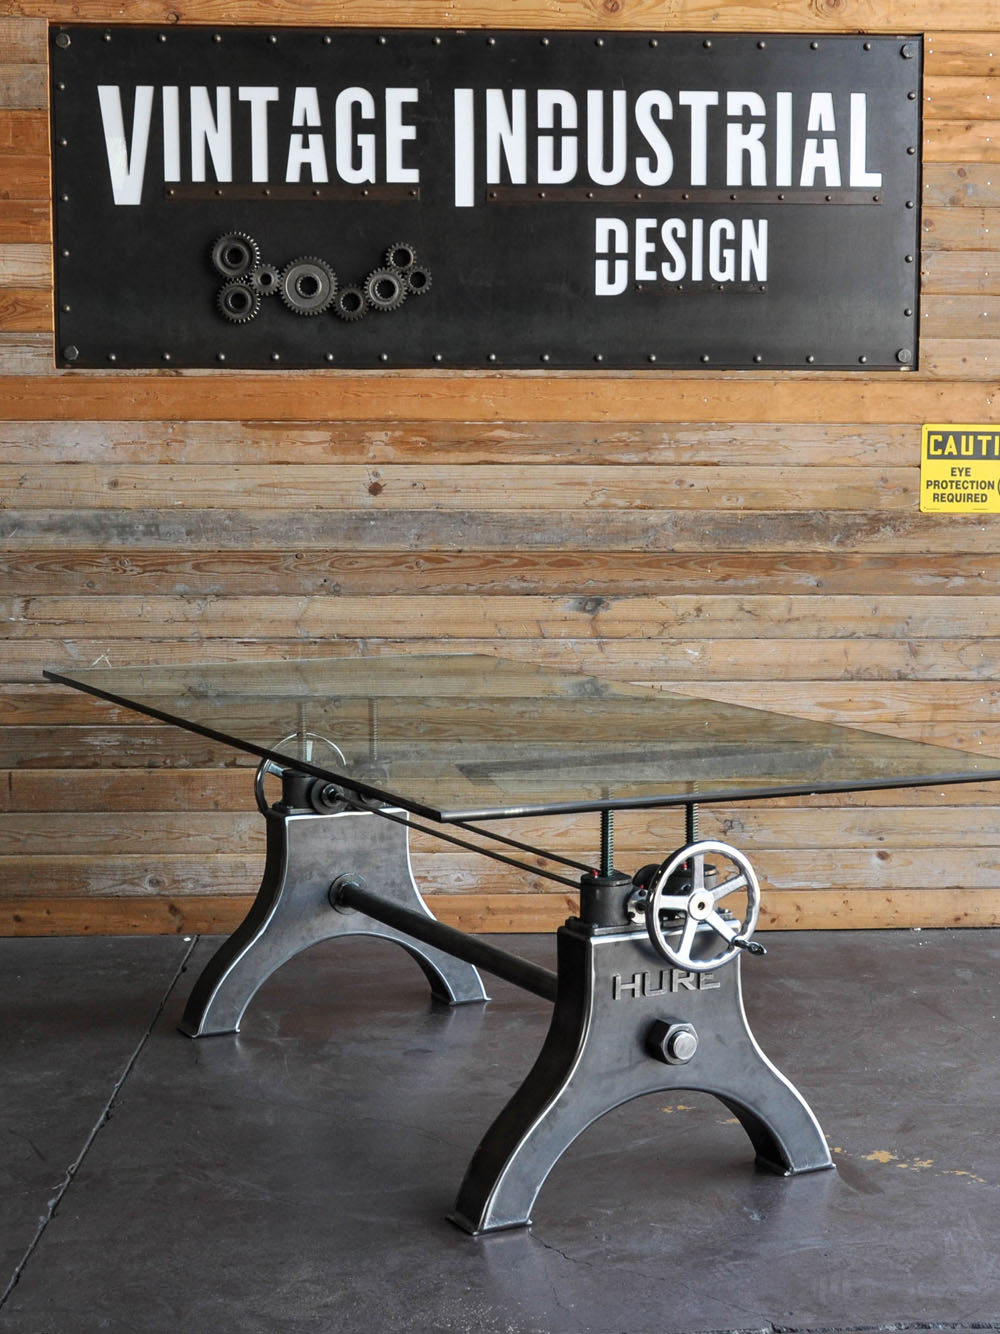 Crank Table design by Vintage Industrial (9)